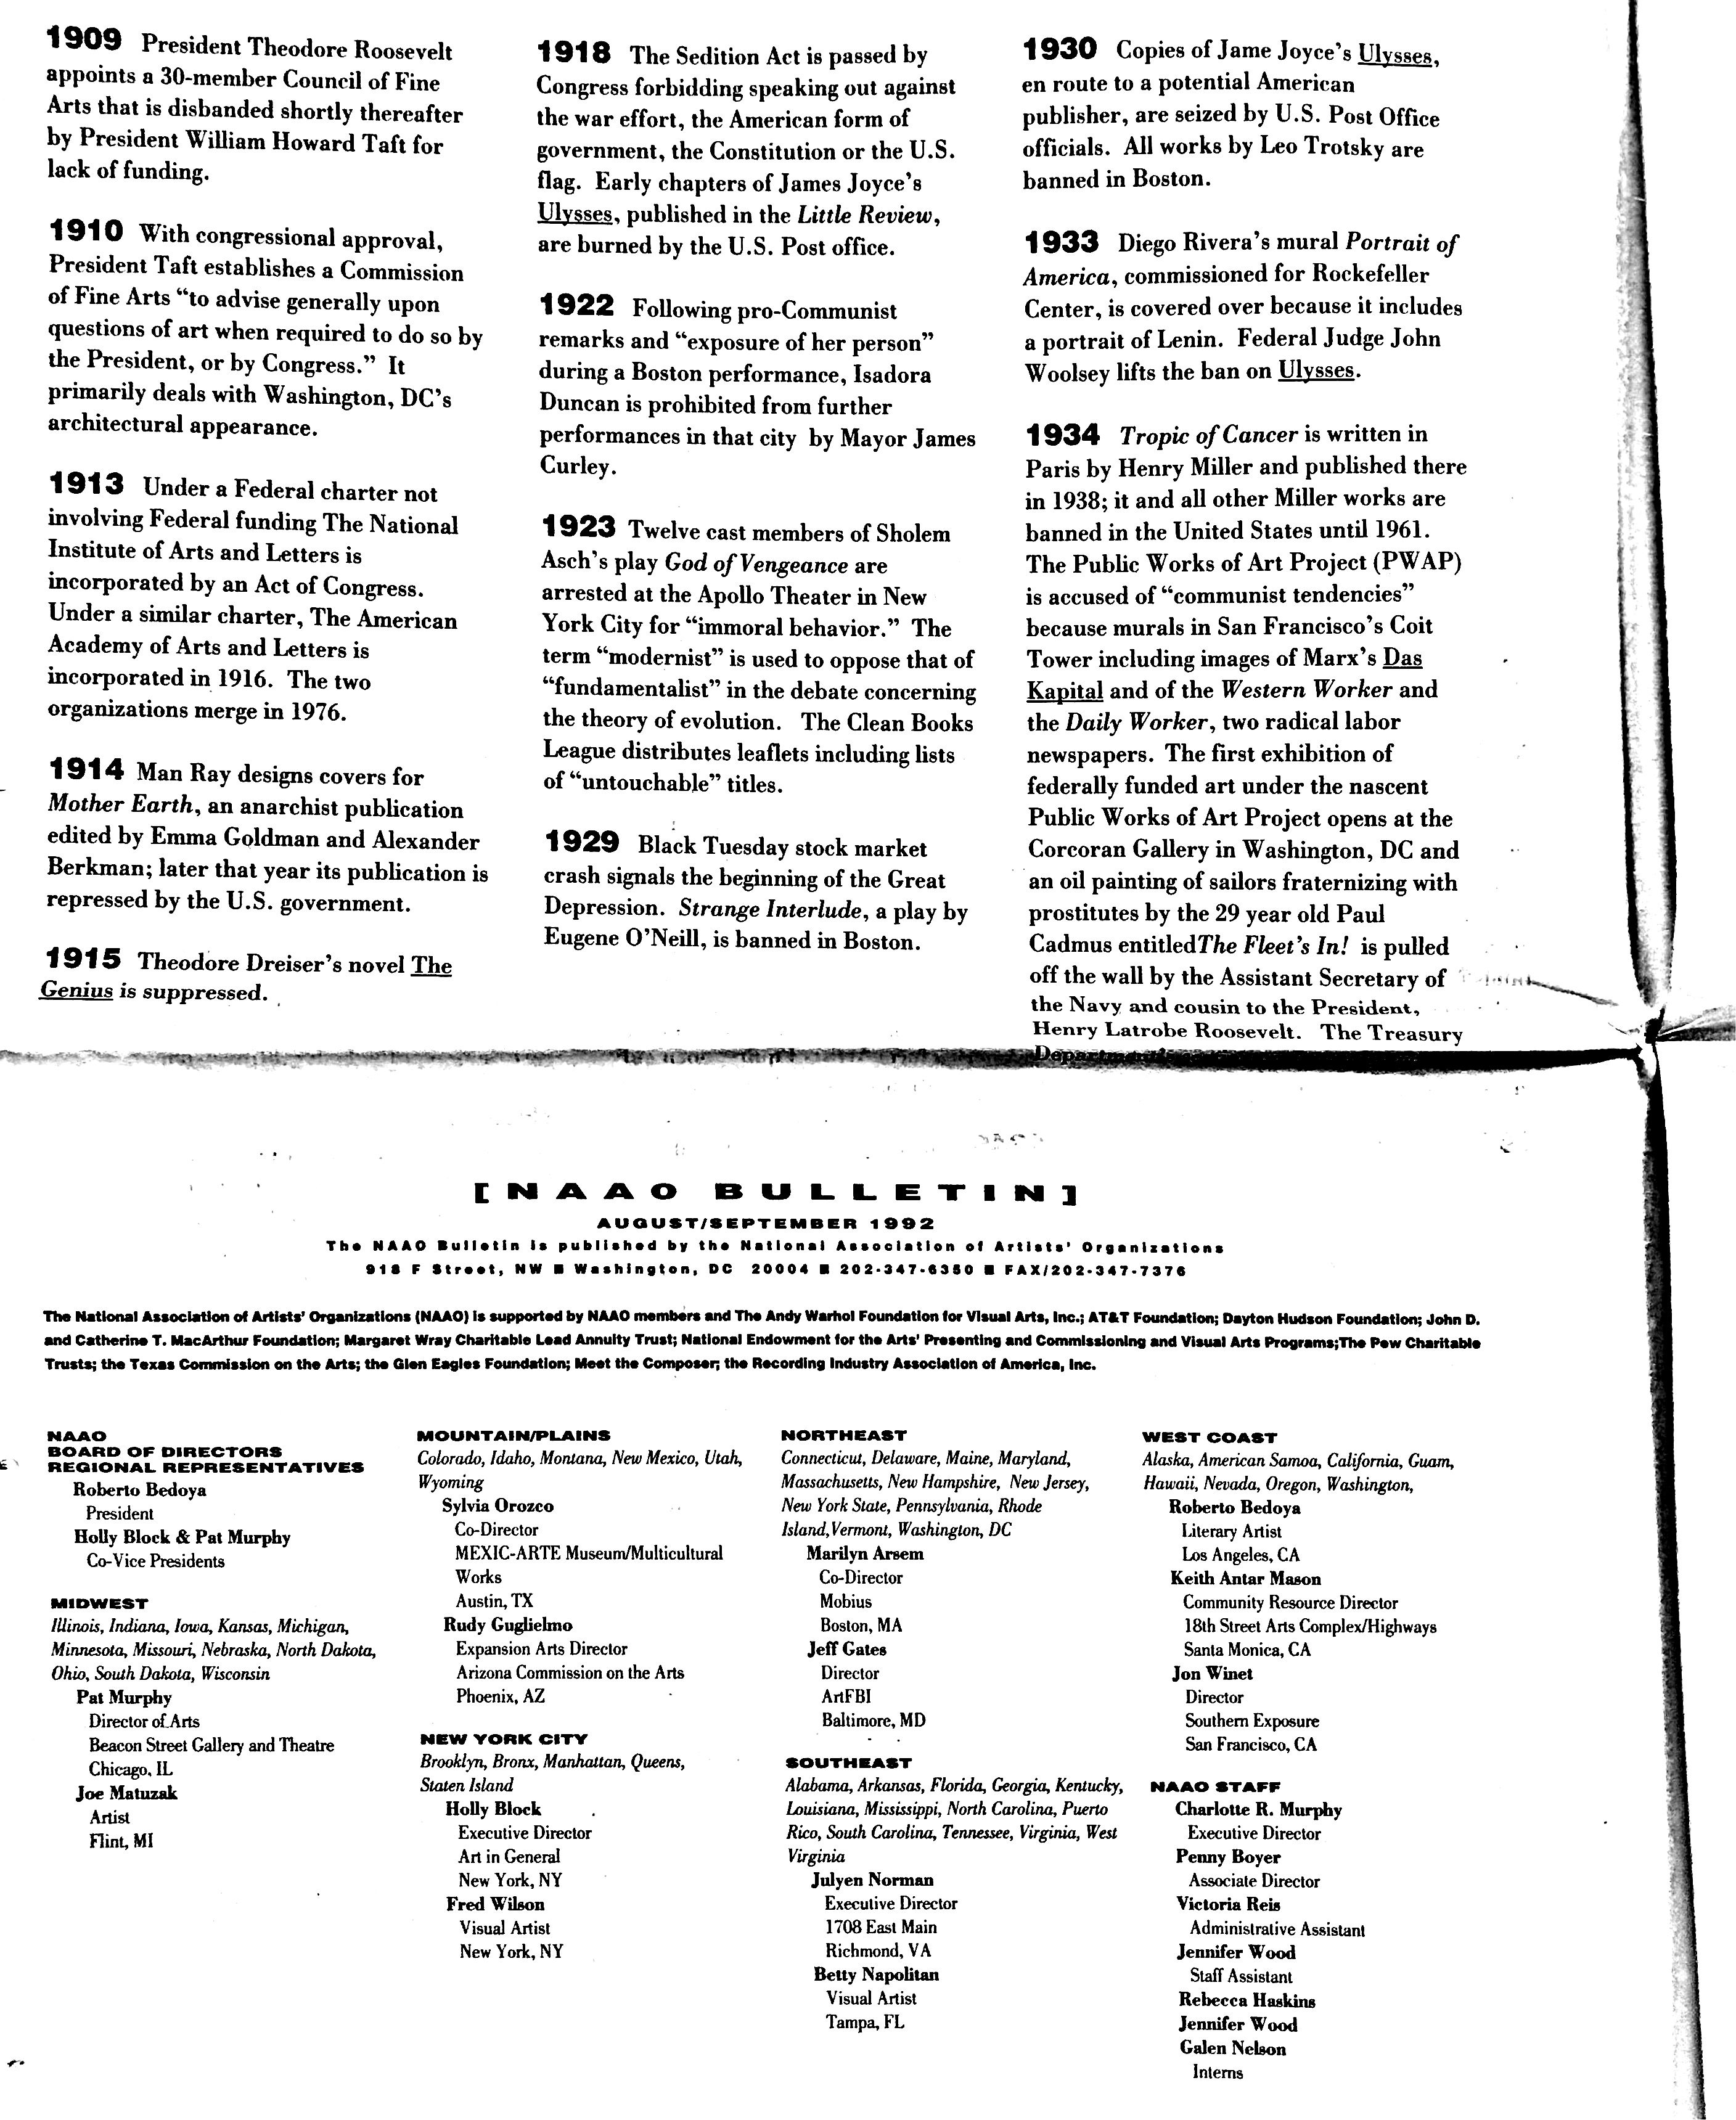 August-September 1992 - NAAO Bulletin Page 2.jpg